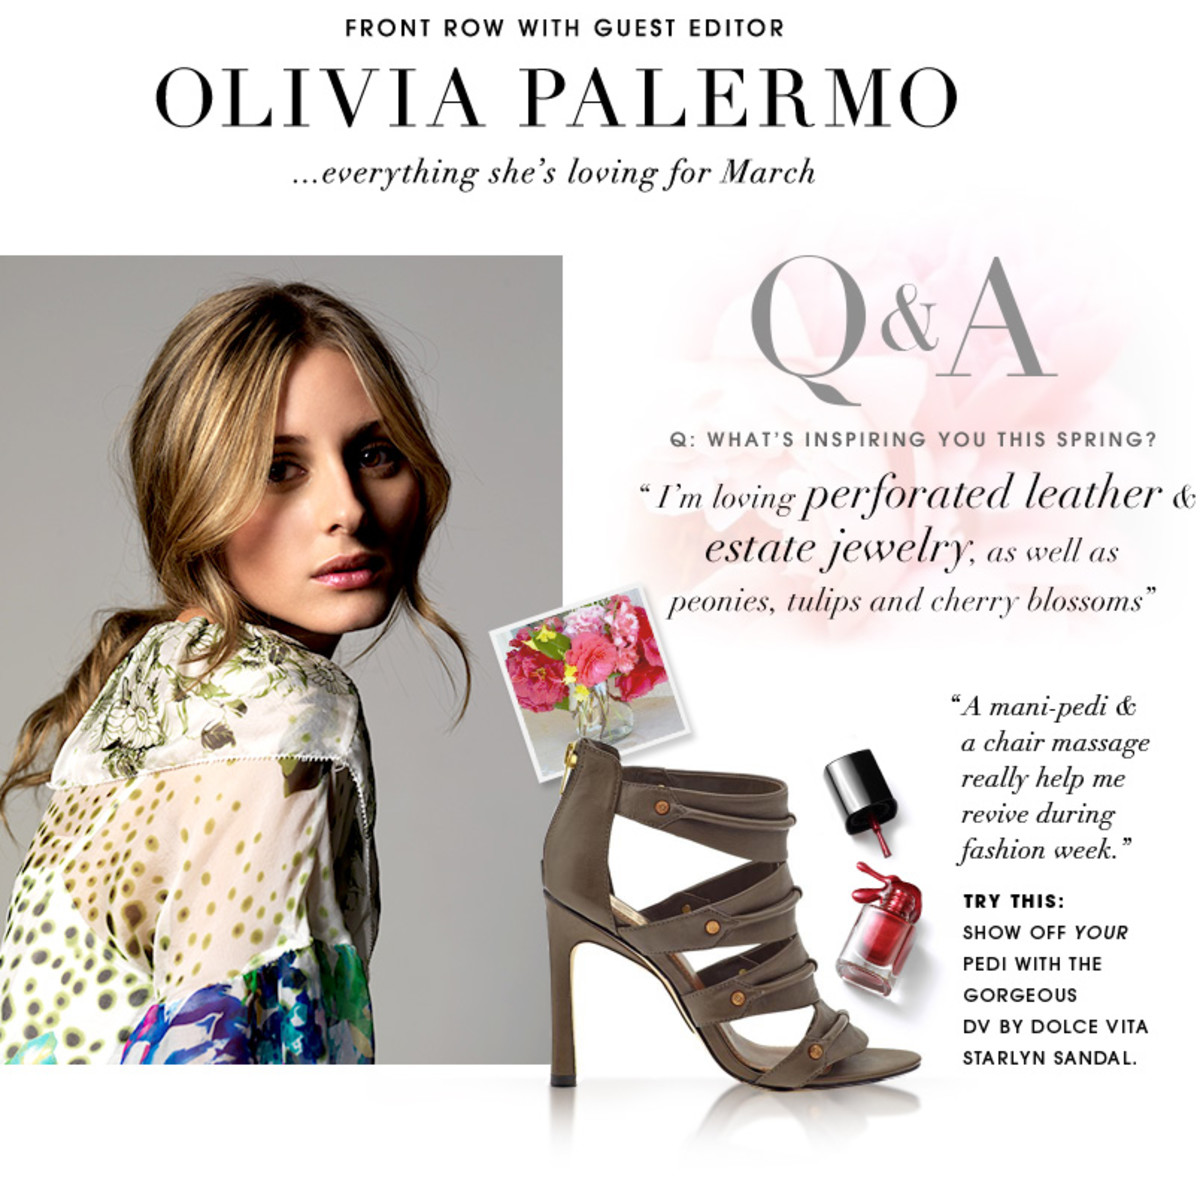 Olivia Palermo's Spring Style